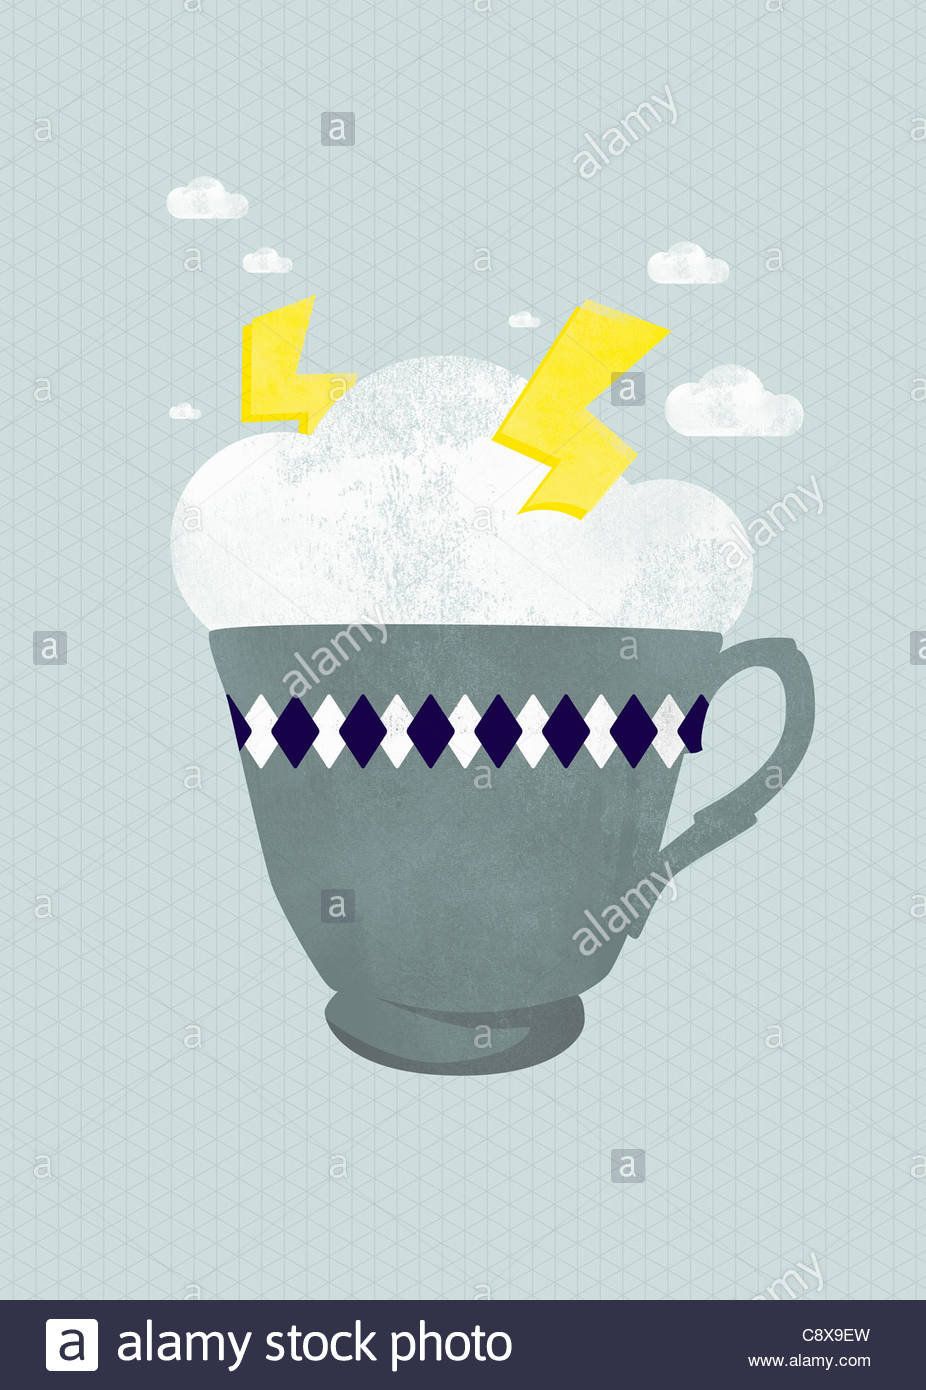 Lightning storm in teacup - Stock Image